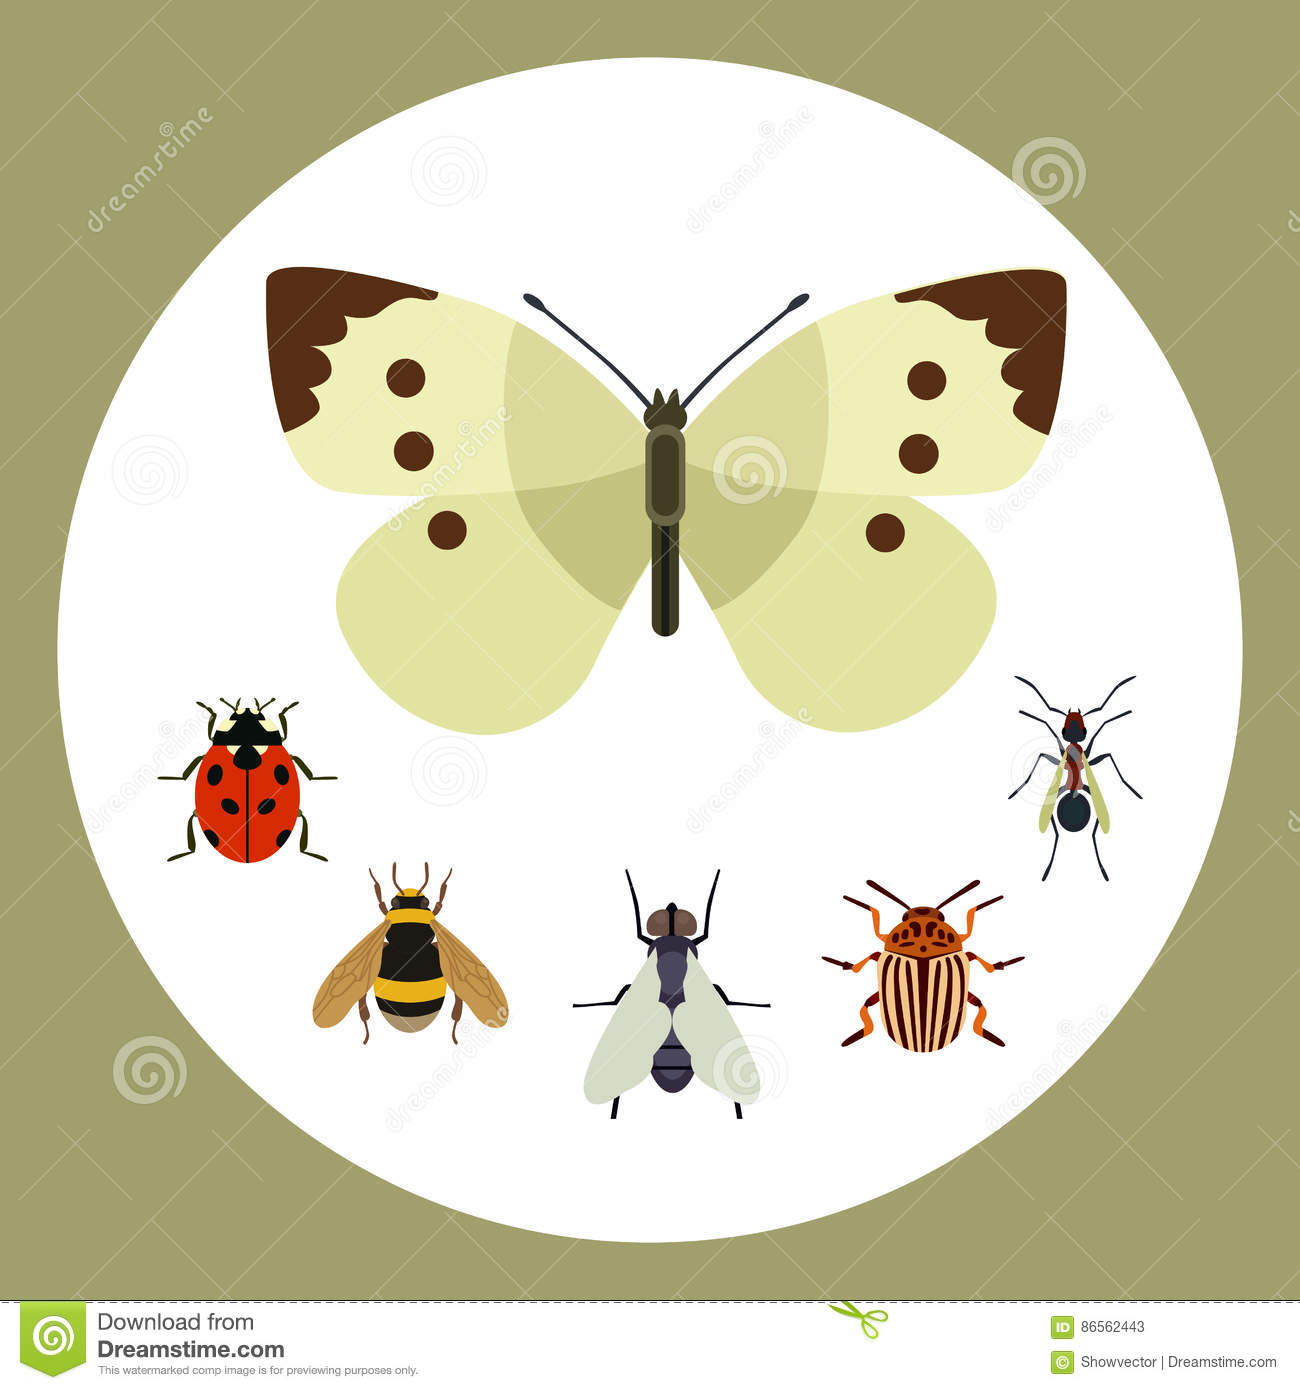 Worksheet Butterfly Beetle insect icon flat nature flying butterfly beetle ant and wildlife spider grasshopper or mosquito cockroach